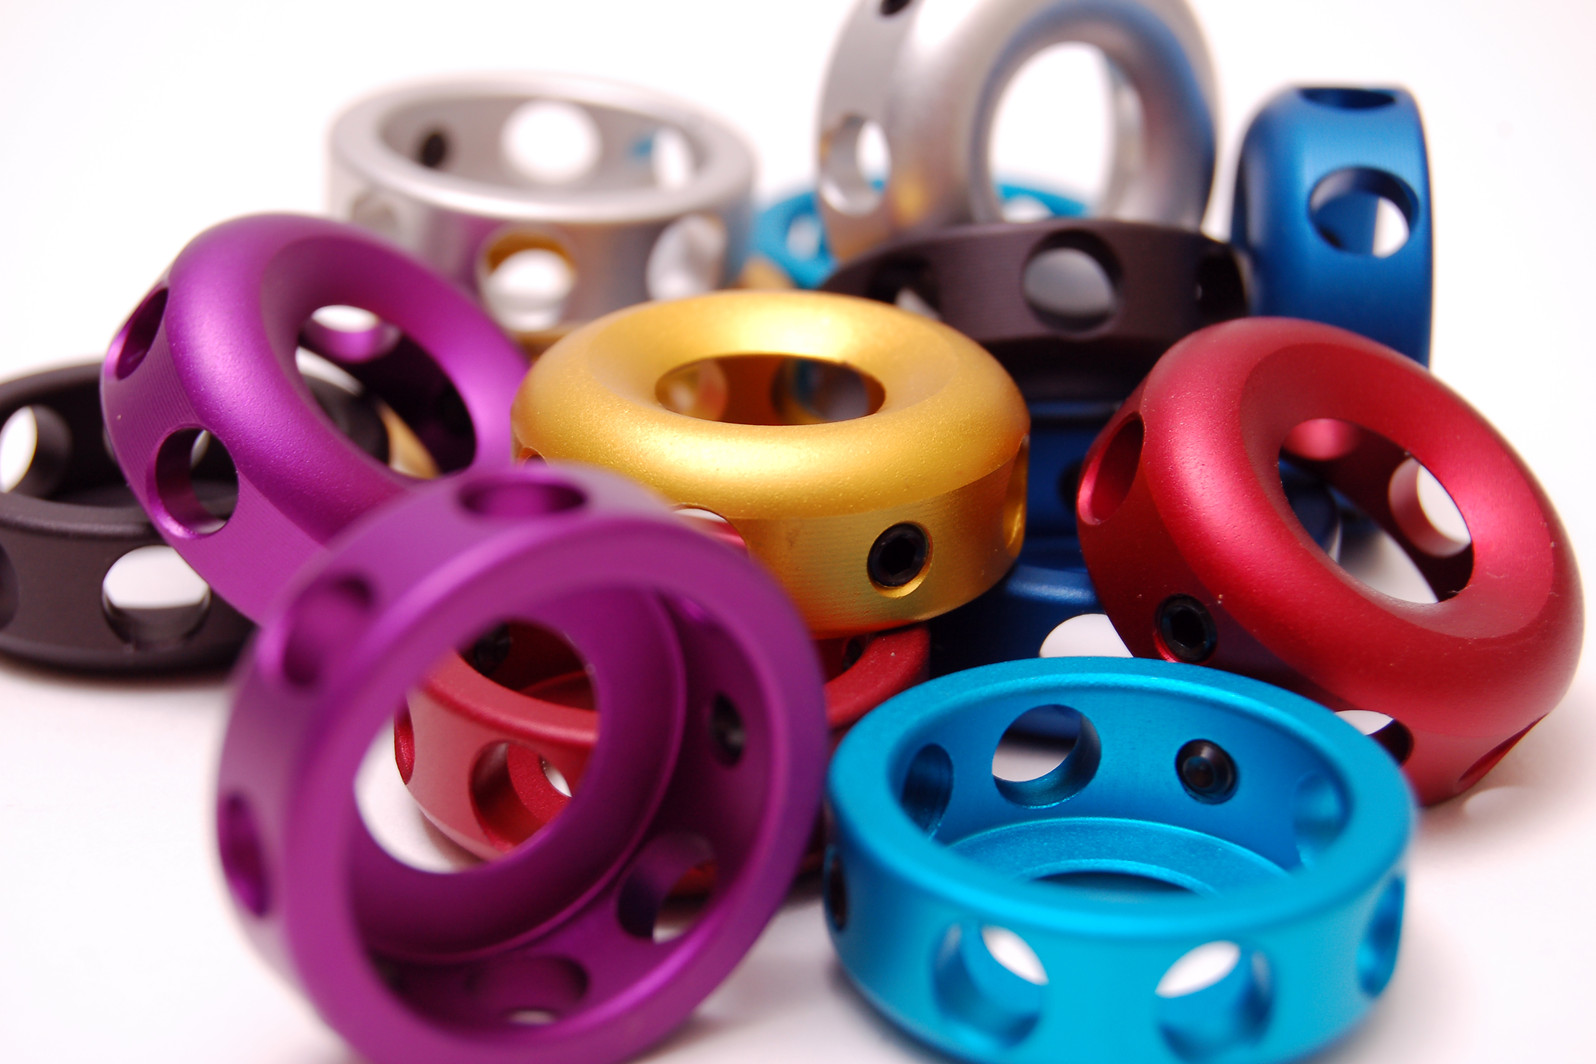 Eastern Alloy Bar End Bar Ends Alloy Matte Grouped Close Up